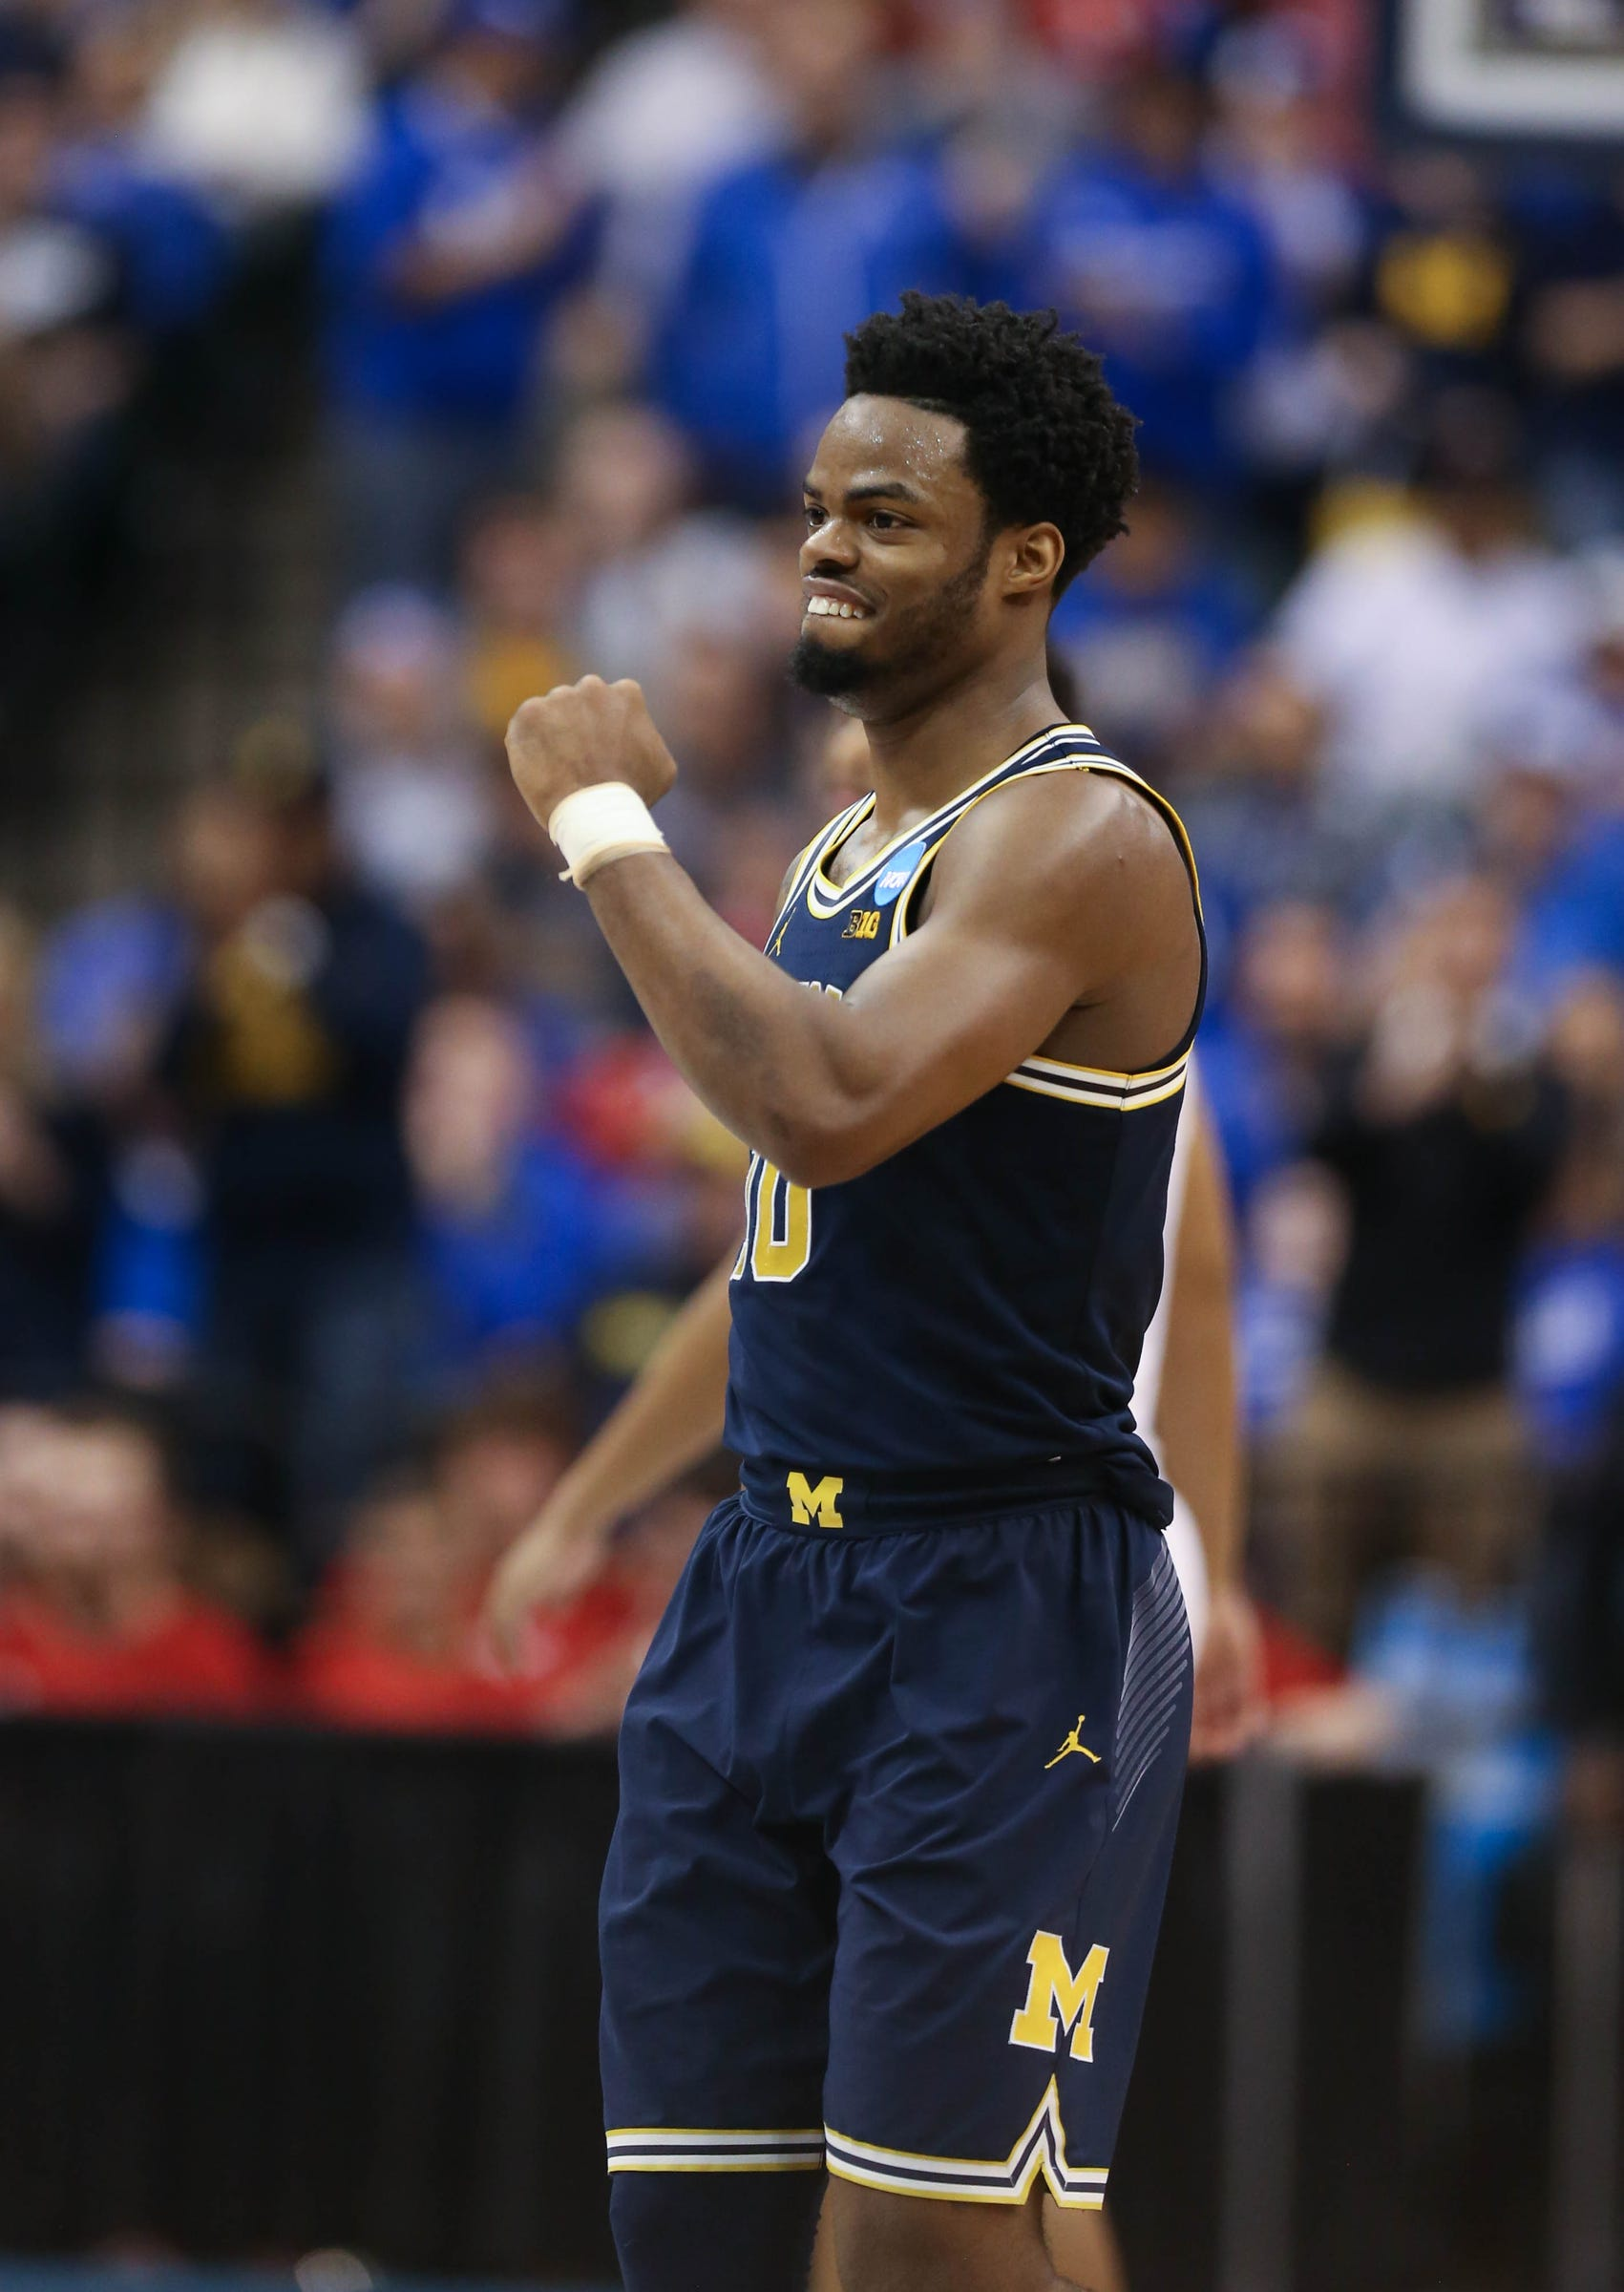 Announcer Kevin Harlan: Michigan's NCAA tourney run out of a storybook